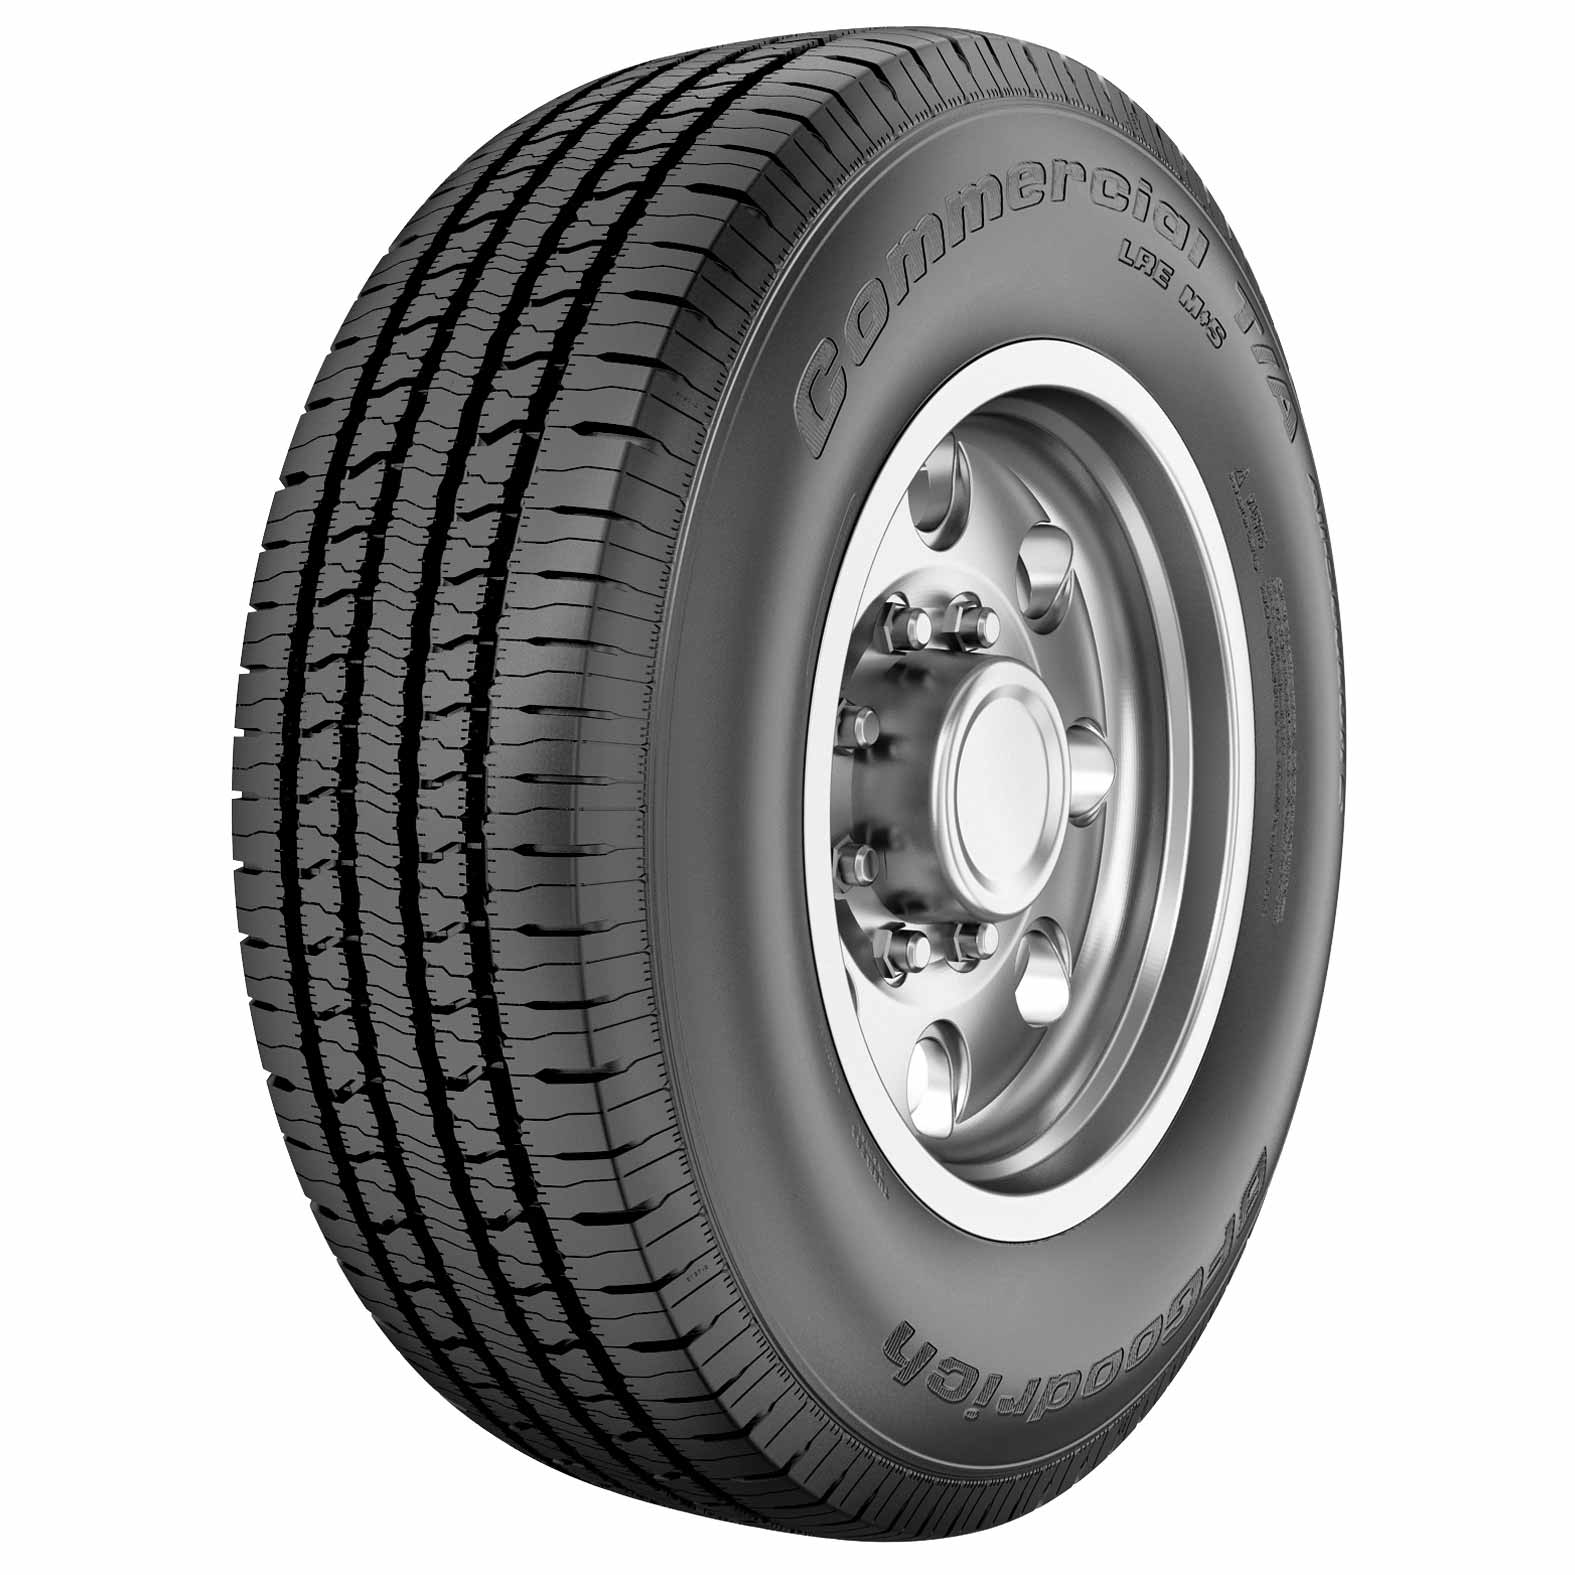 BFGoodrich Commercial T/A All-Season 2 tire - angle